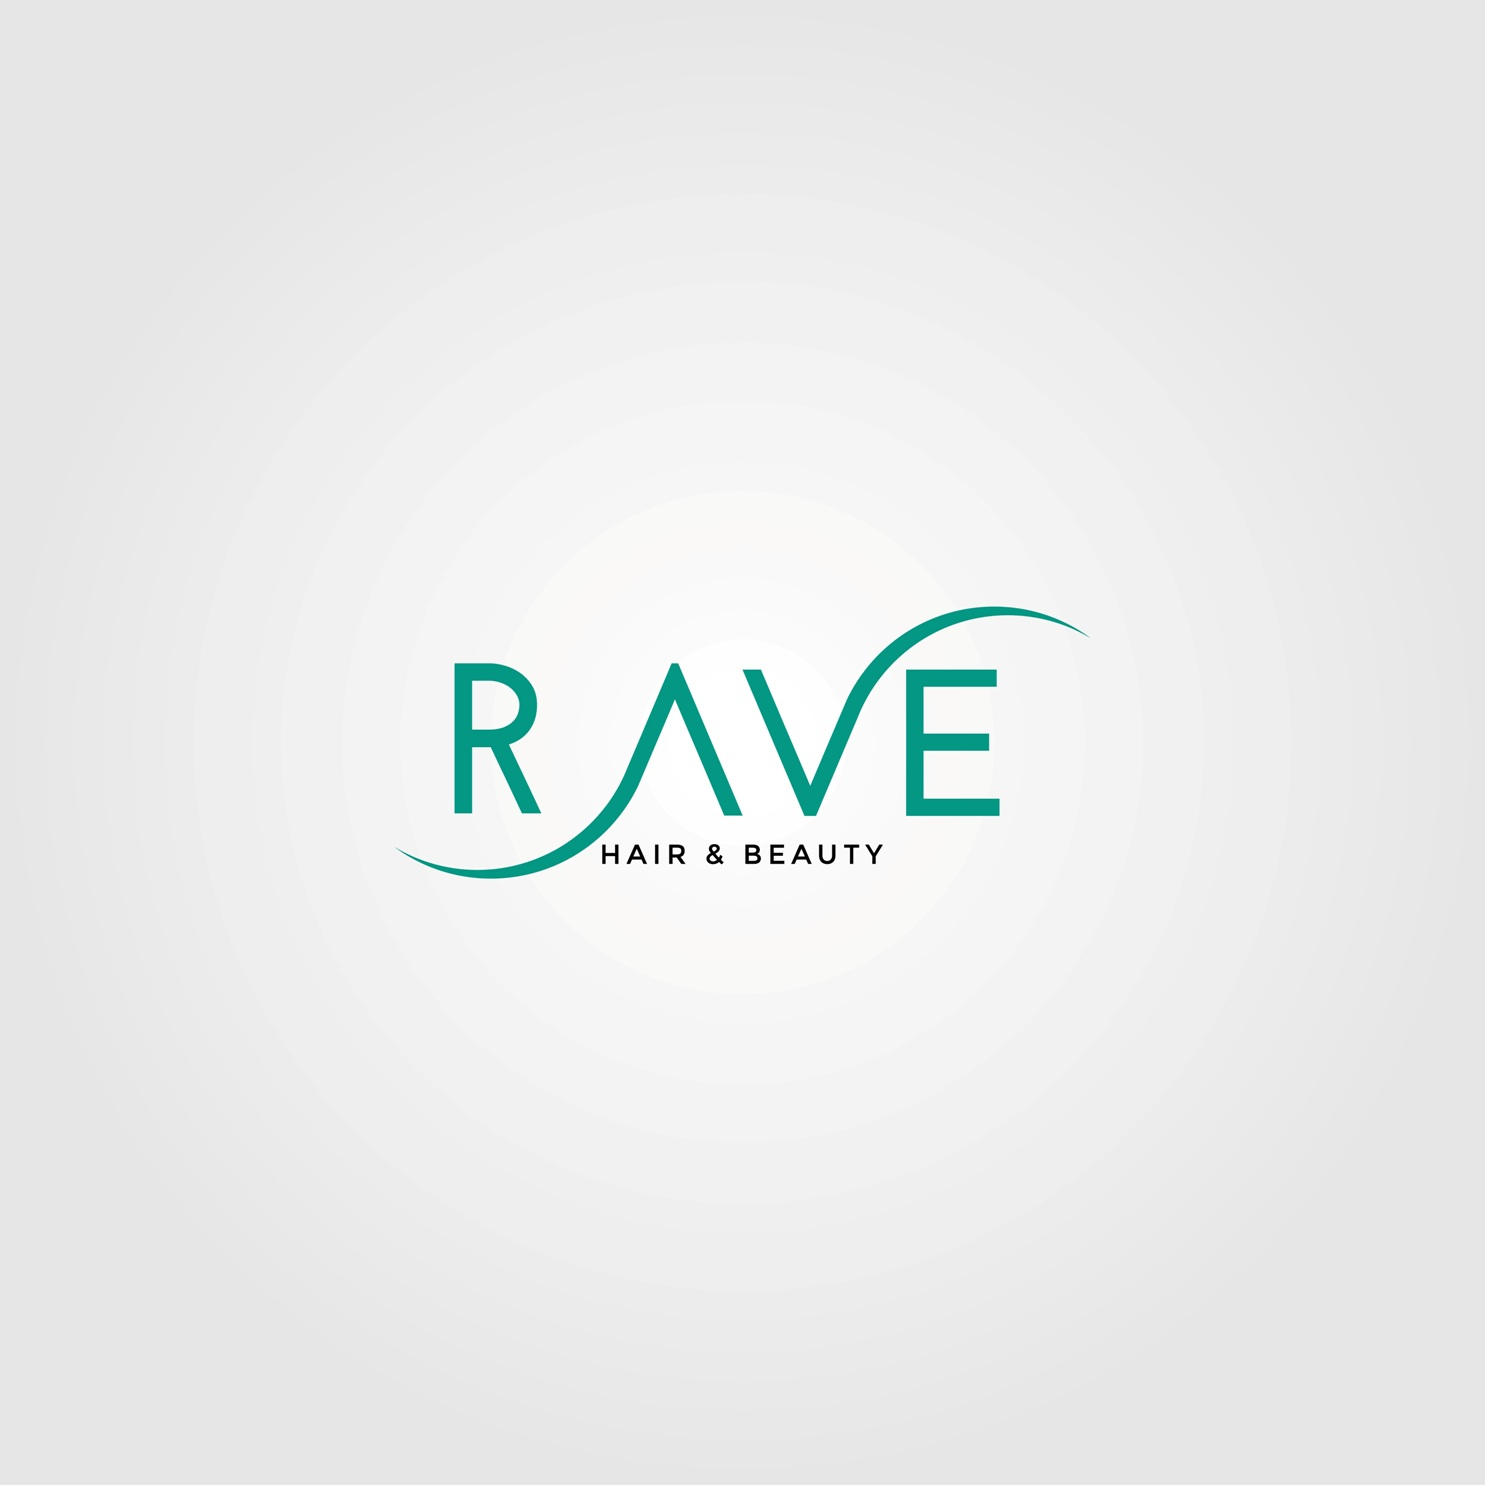 Logo Design for Rave Hair and Beauty by SemangatPagi.